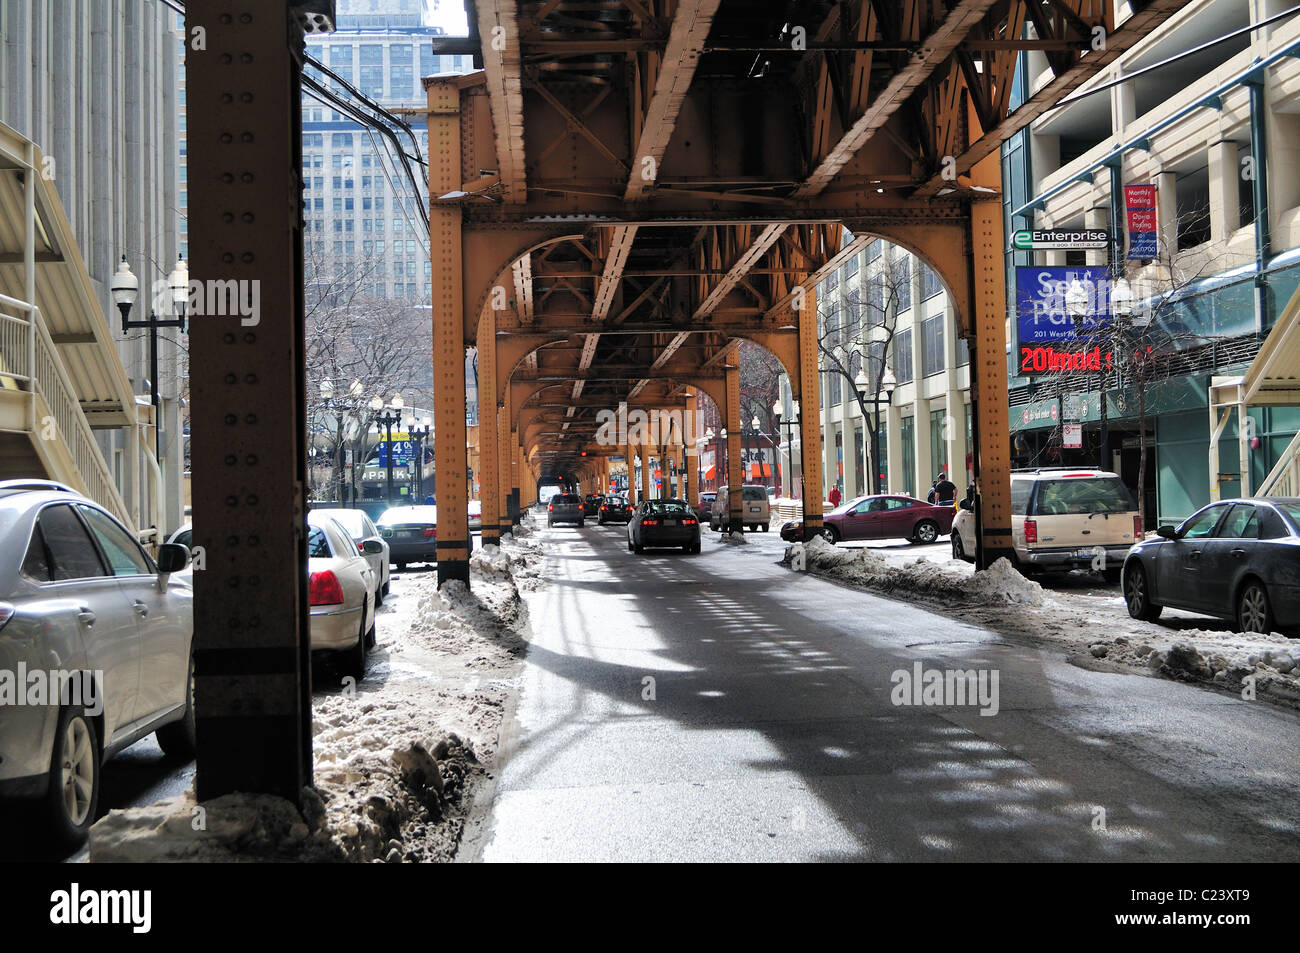 Winter in the city following a storm as snow and slush piles up around the girders supporting elevated train tracks - Stock Image